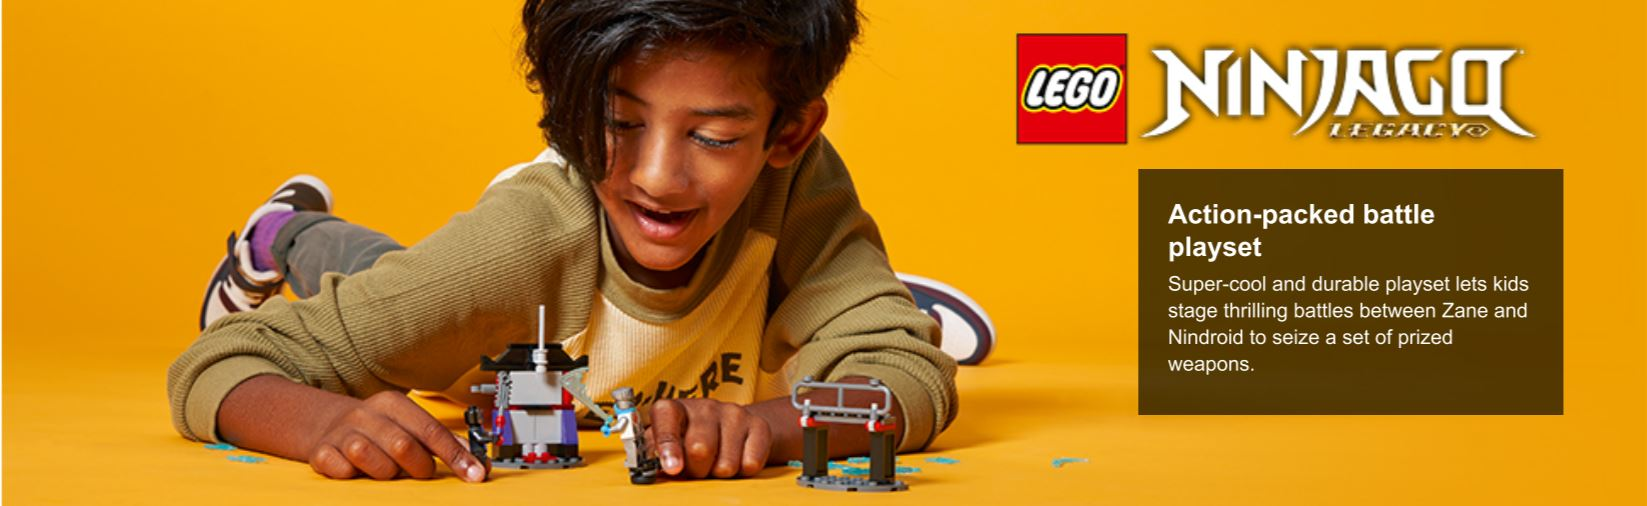 child playing with lego ninja figures